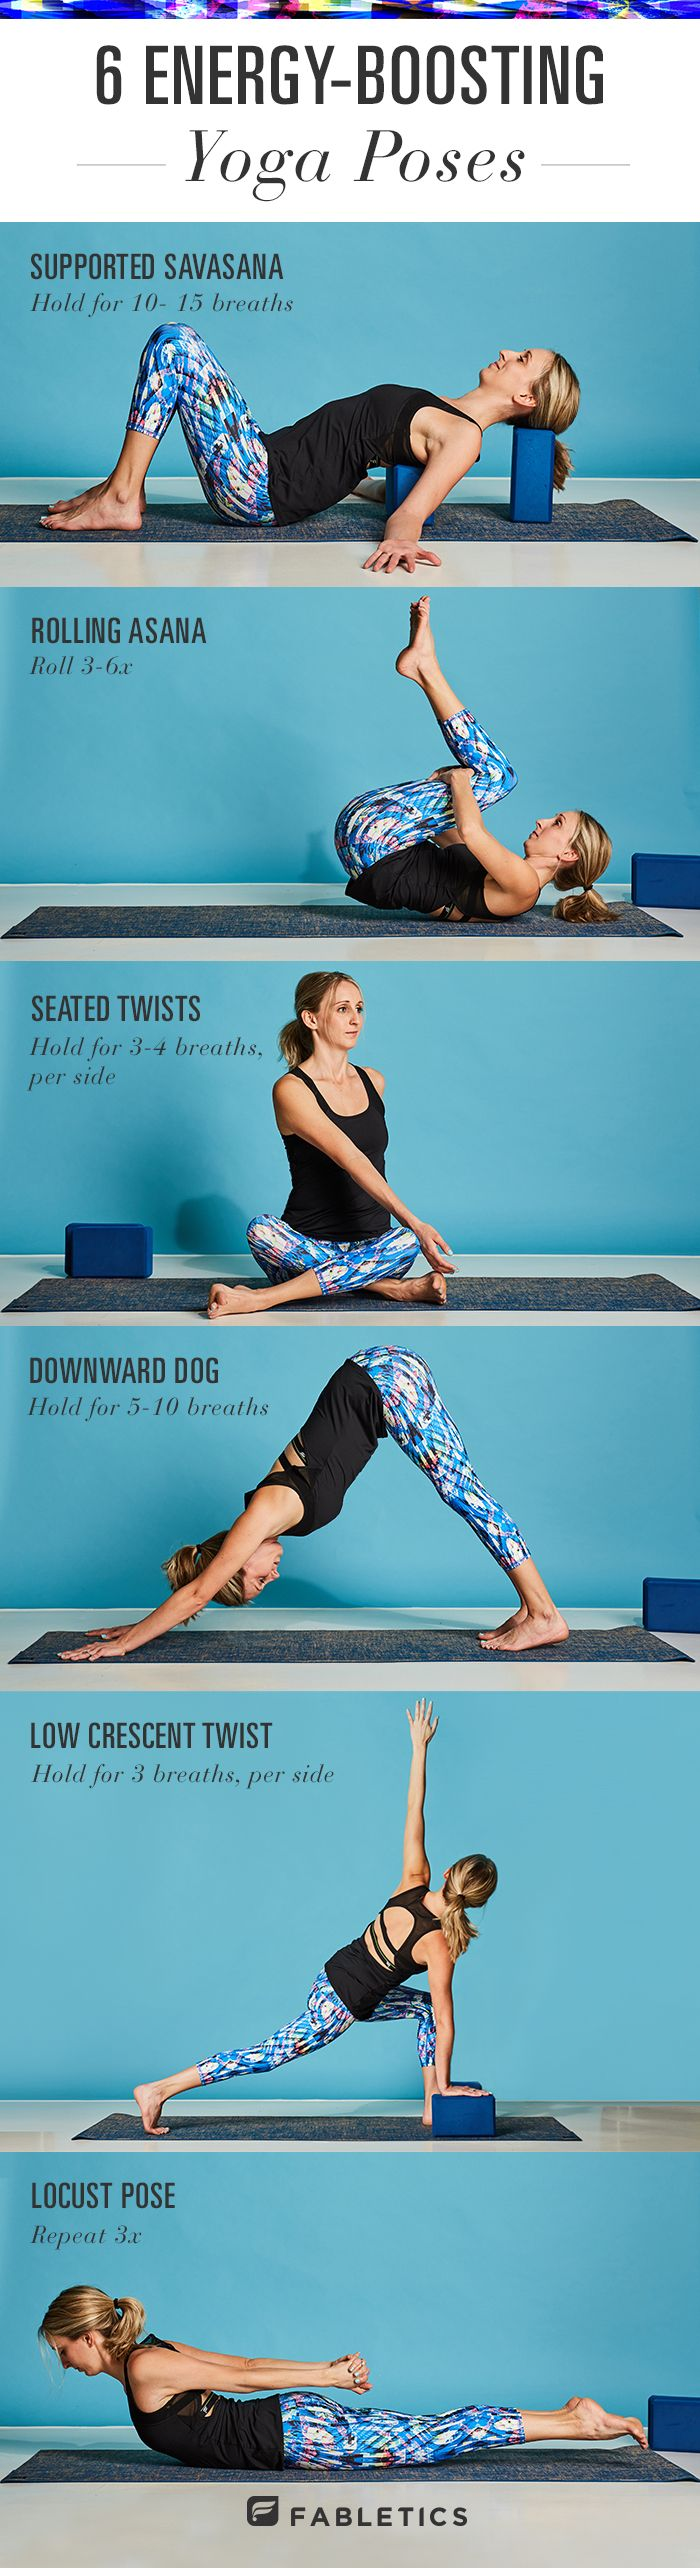 You know those days when you feel lazy, tired and sluggish?  Sometimes it just seems like it doesn't matter how many cups of coffee you have- it's just not working!  Give yoga a try! Here's 6 yoga poses + bonus breath work that will boost your energy and give you that extra bit of gusto to get through your day like the rockstar that you are! | Fabletics Blog